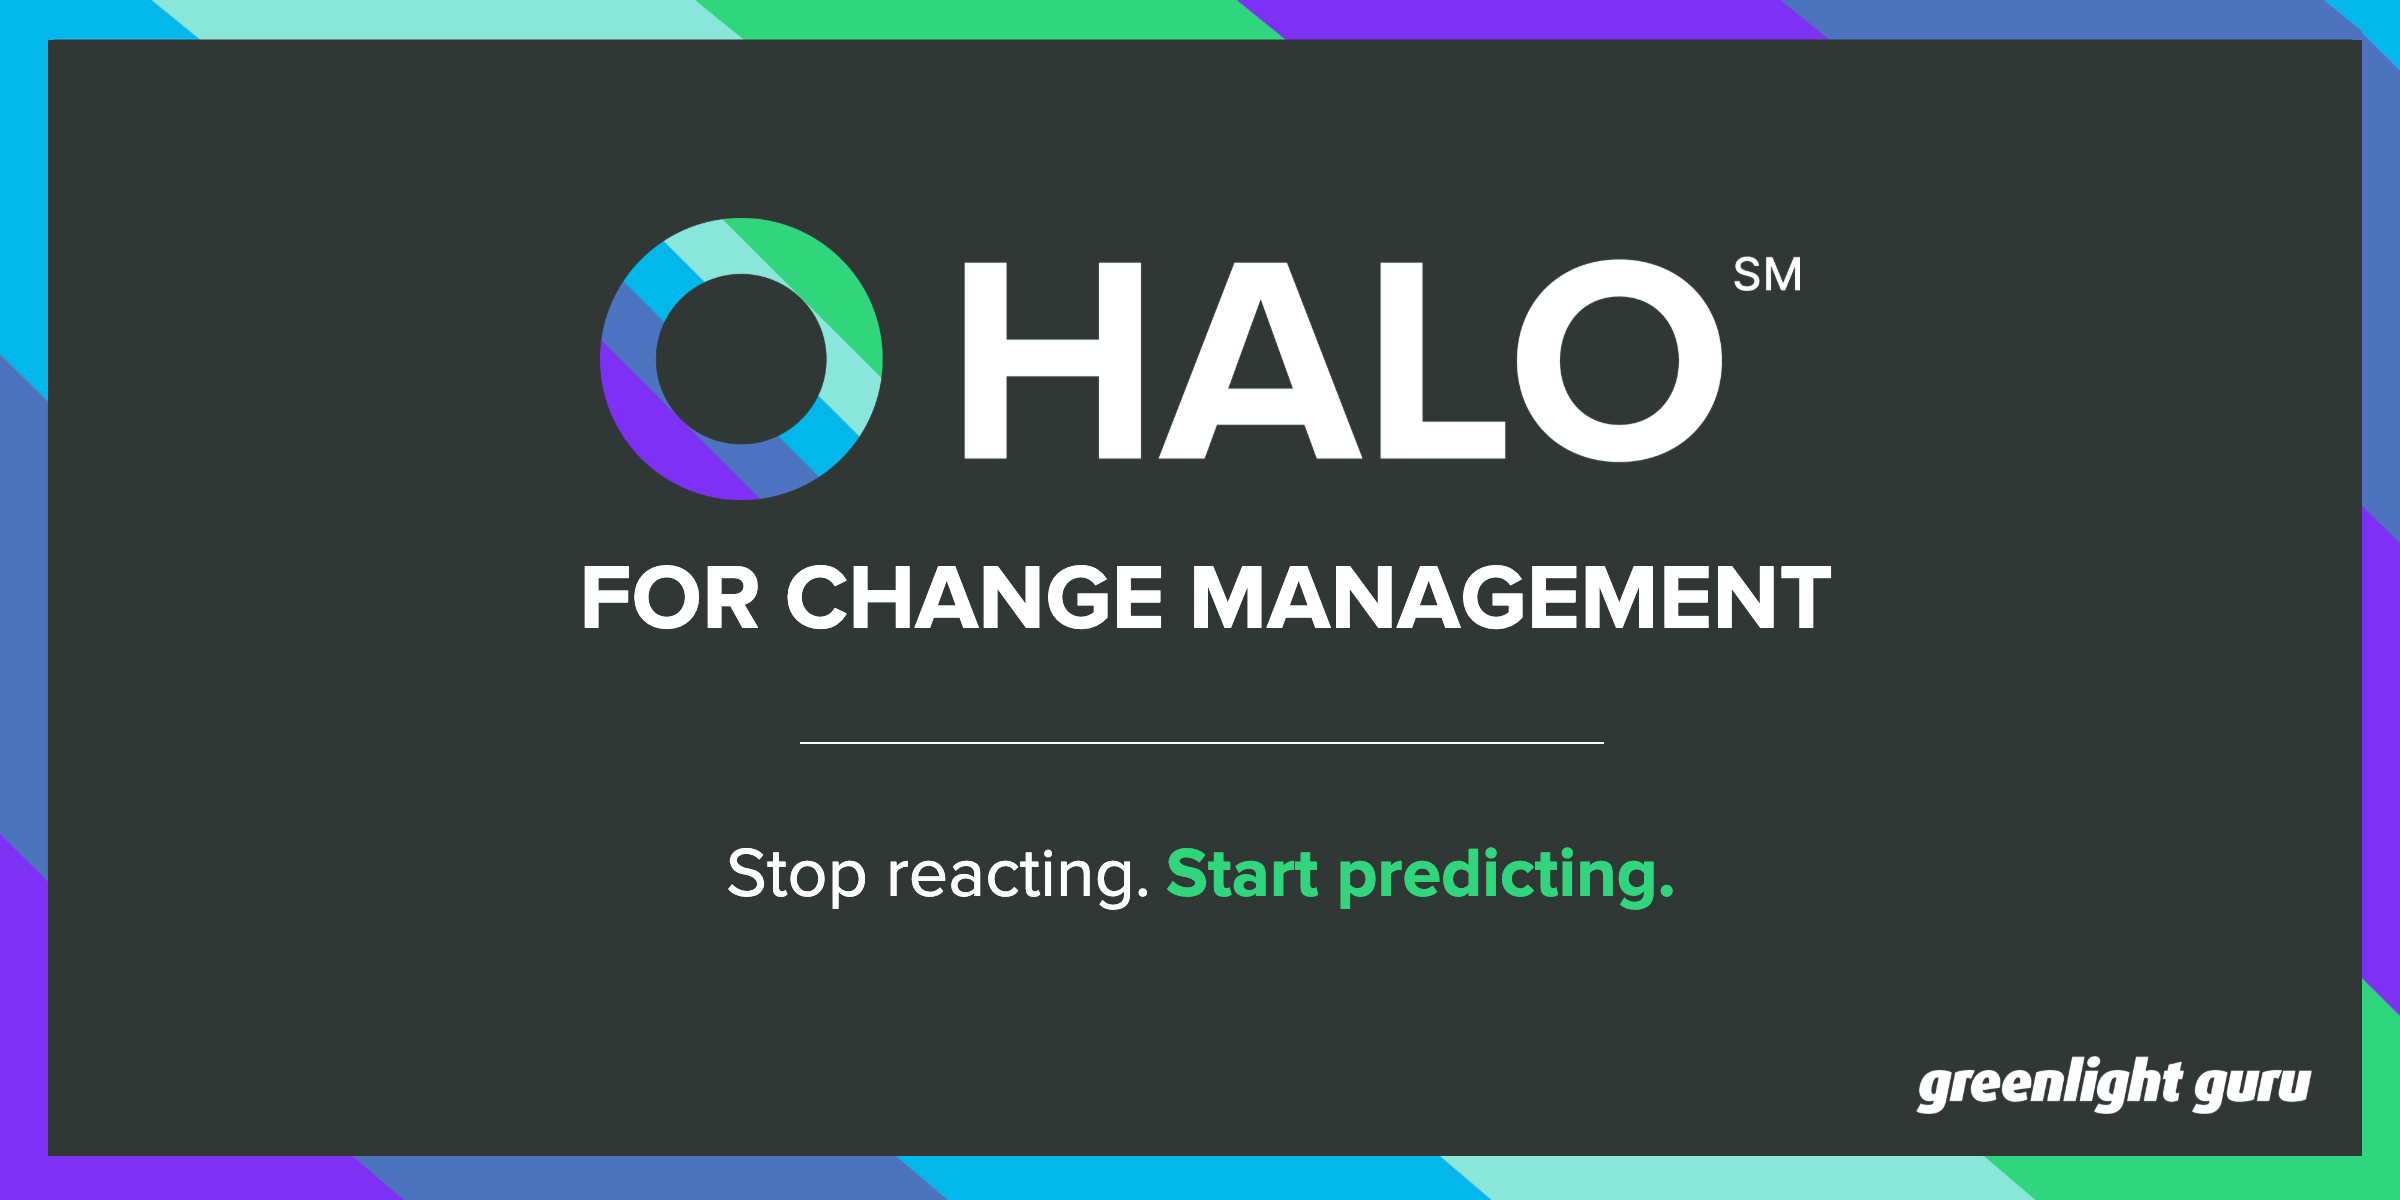 Greenlight Guru Launches Halo℠ For Change Management, World's First AI & ML Recommendation Engine for Medical Device Quality - Featured Image